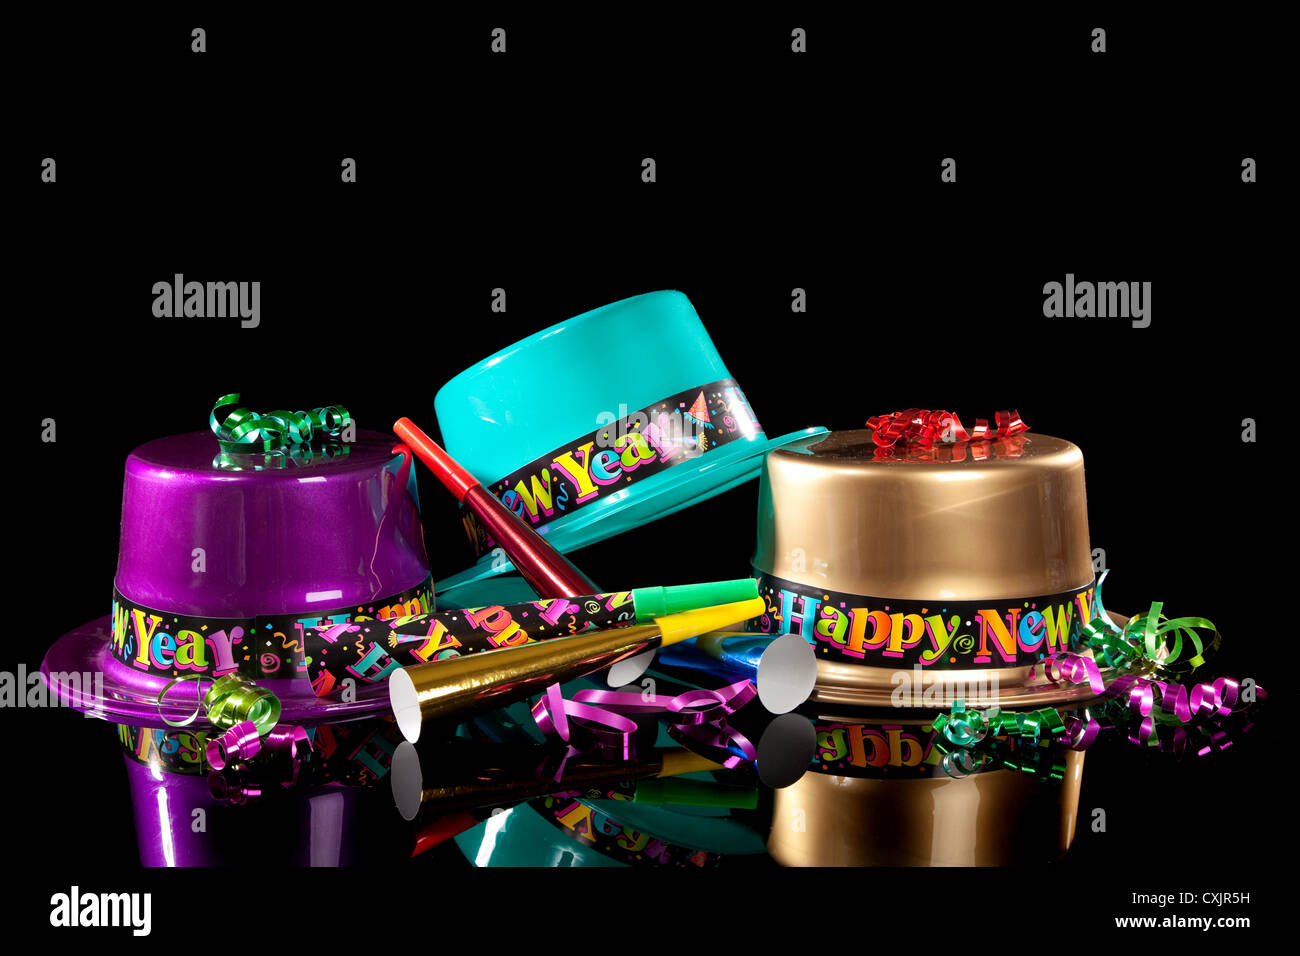 new years eve party hats and decorations on a black background